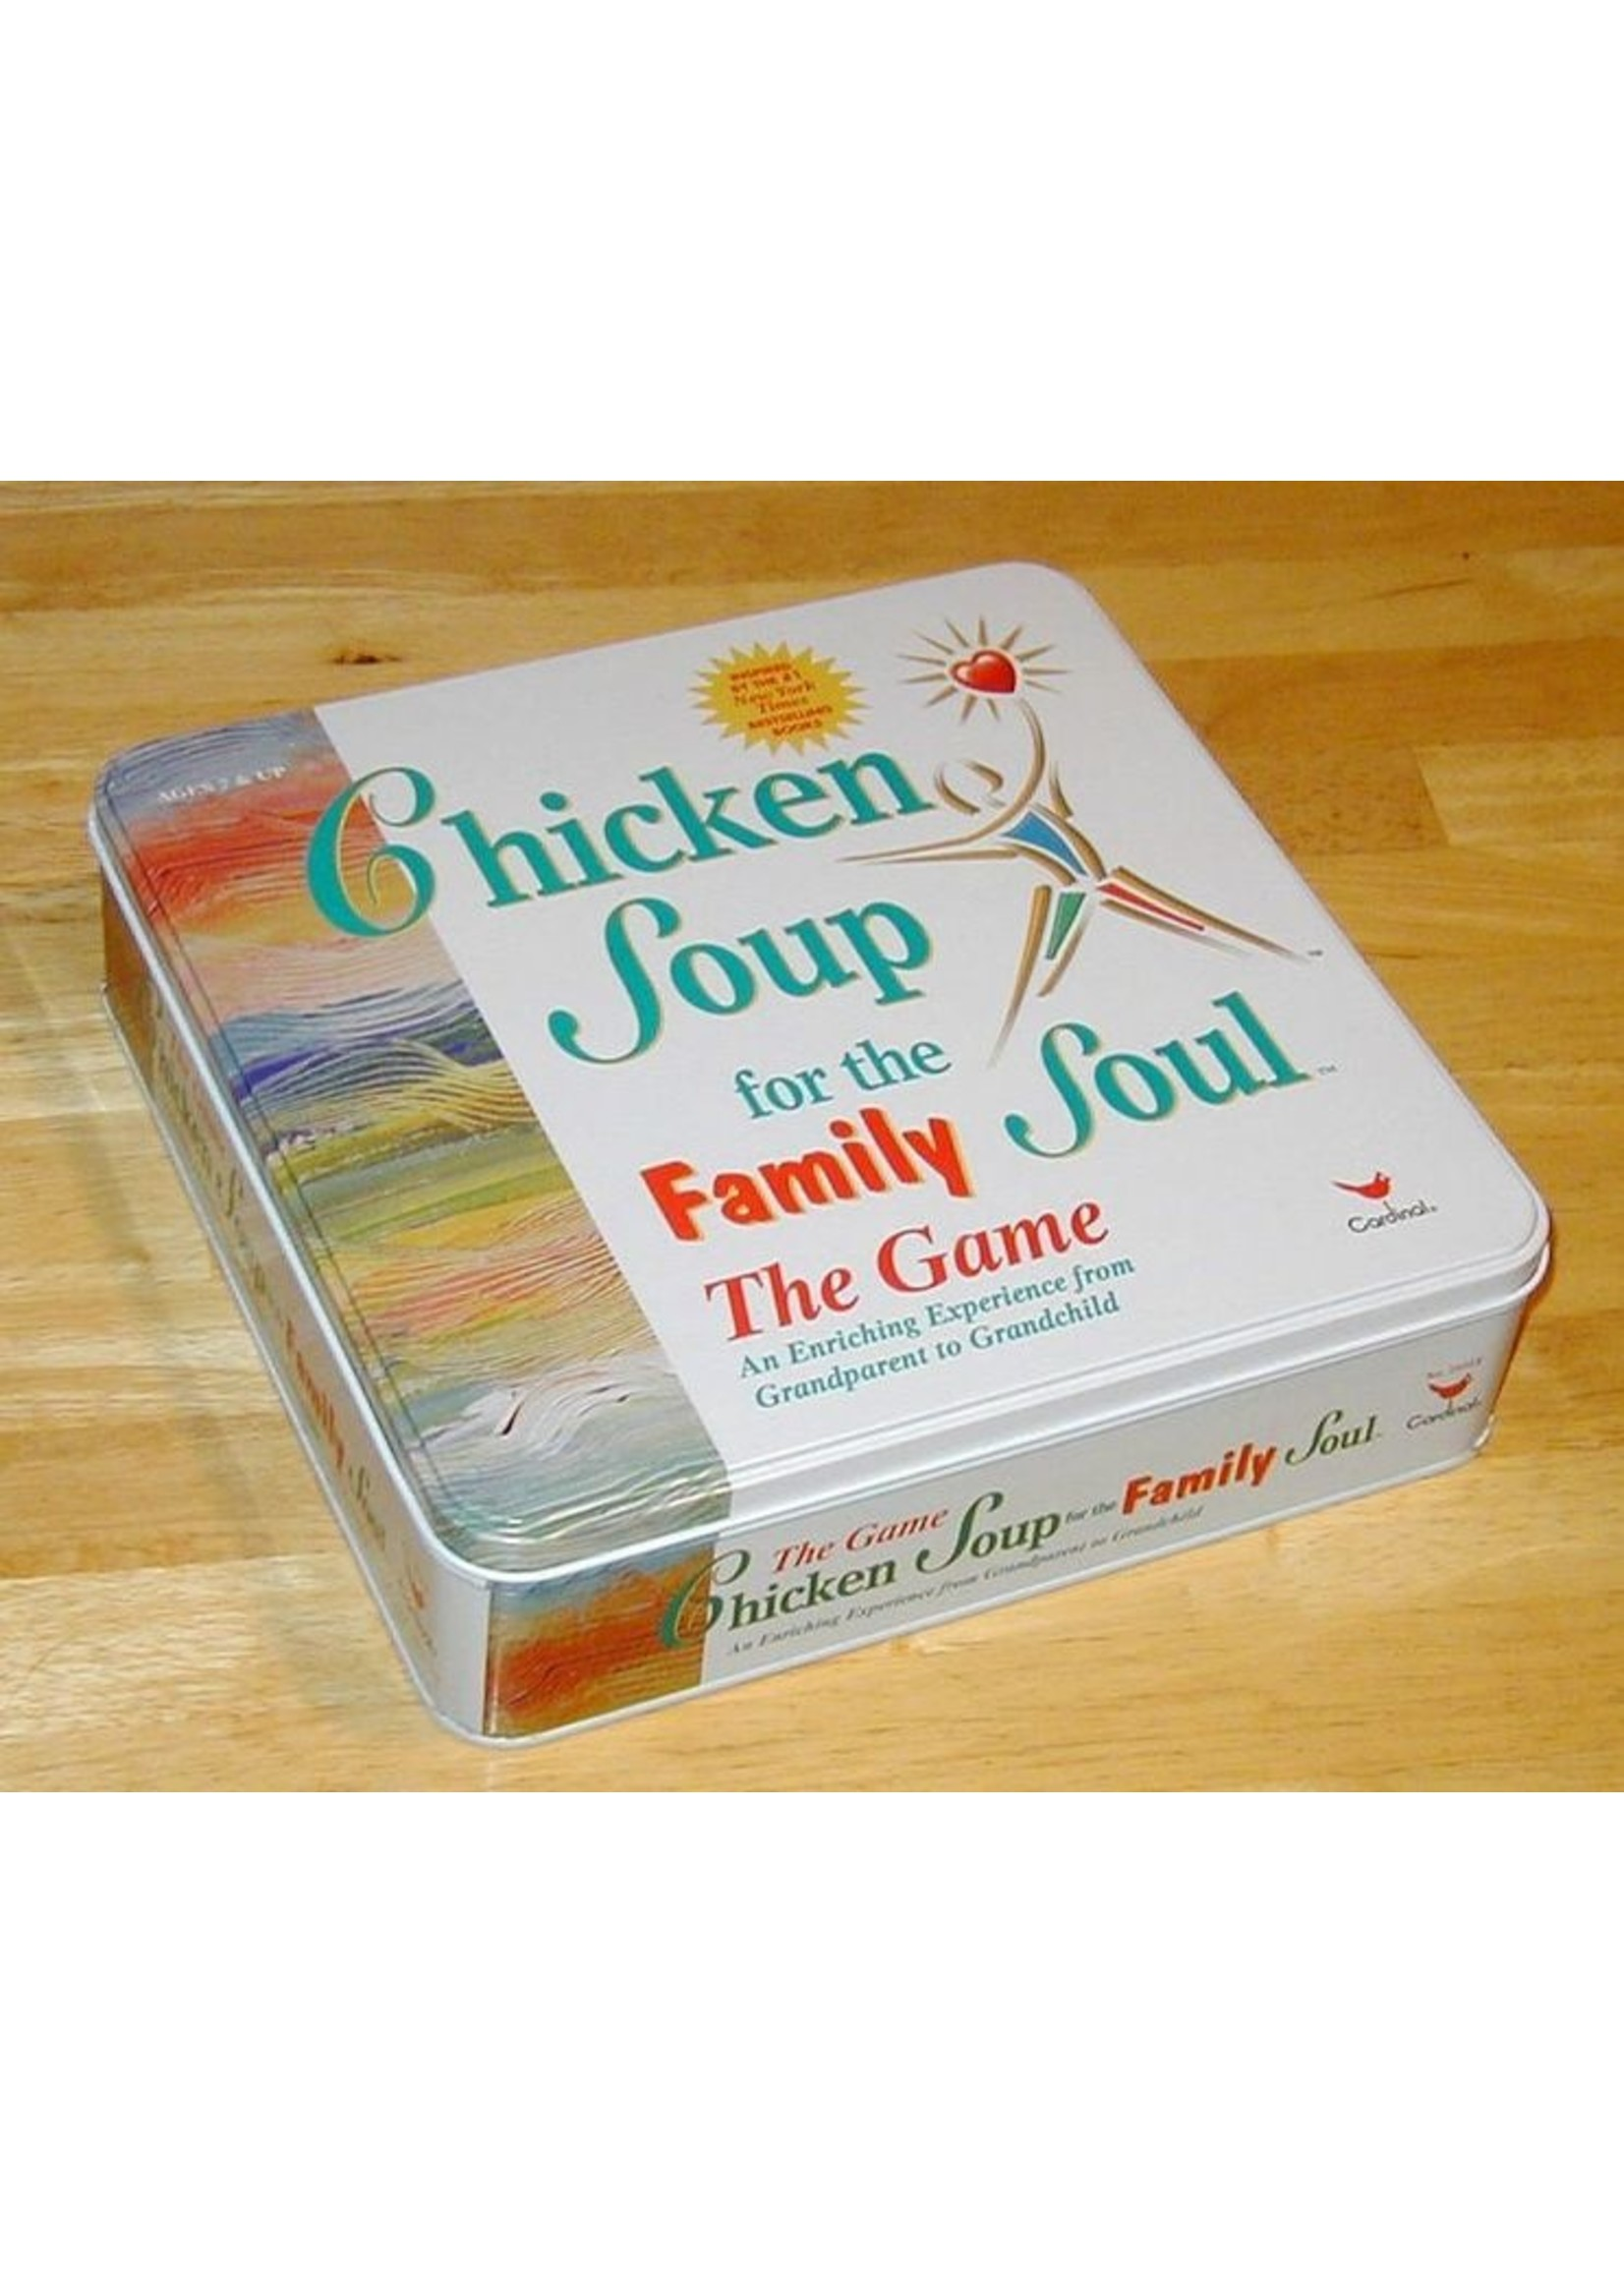 Chicken Soup for the Family Soul